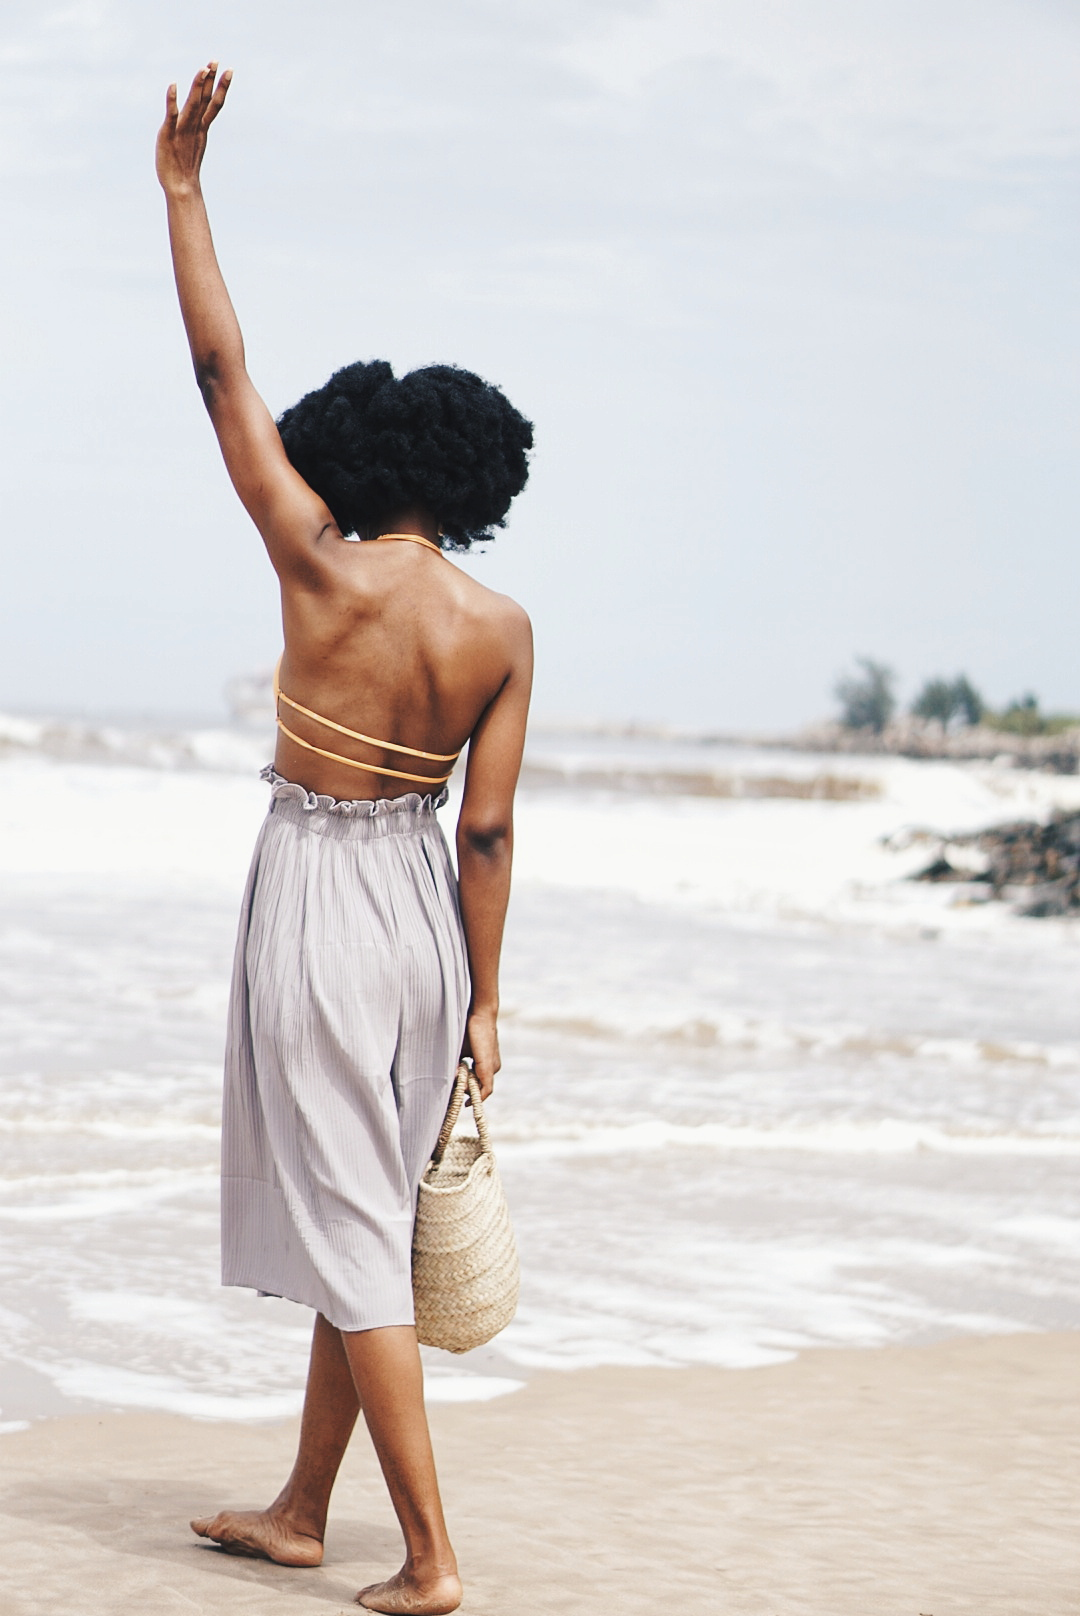 402e9317c4b ... Bikini alternative to swimsuit - Nigerian Lifestyle blogger Cassie  Daves with hands in the air at